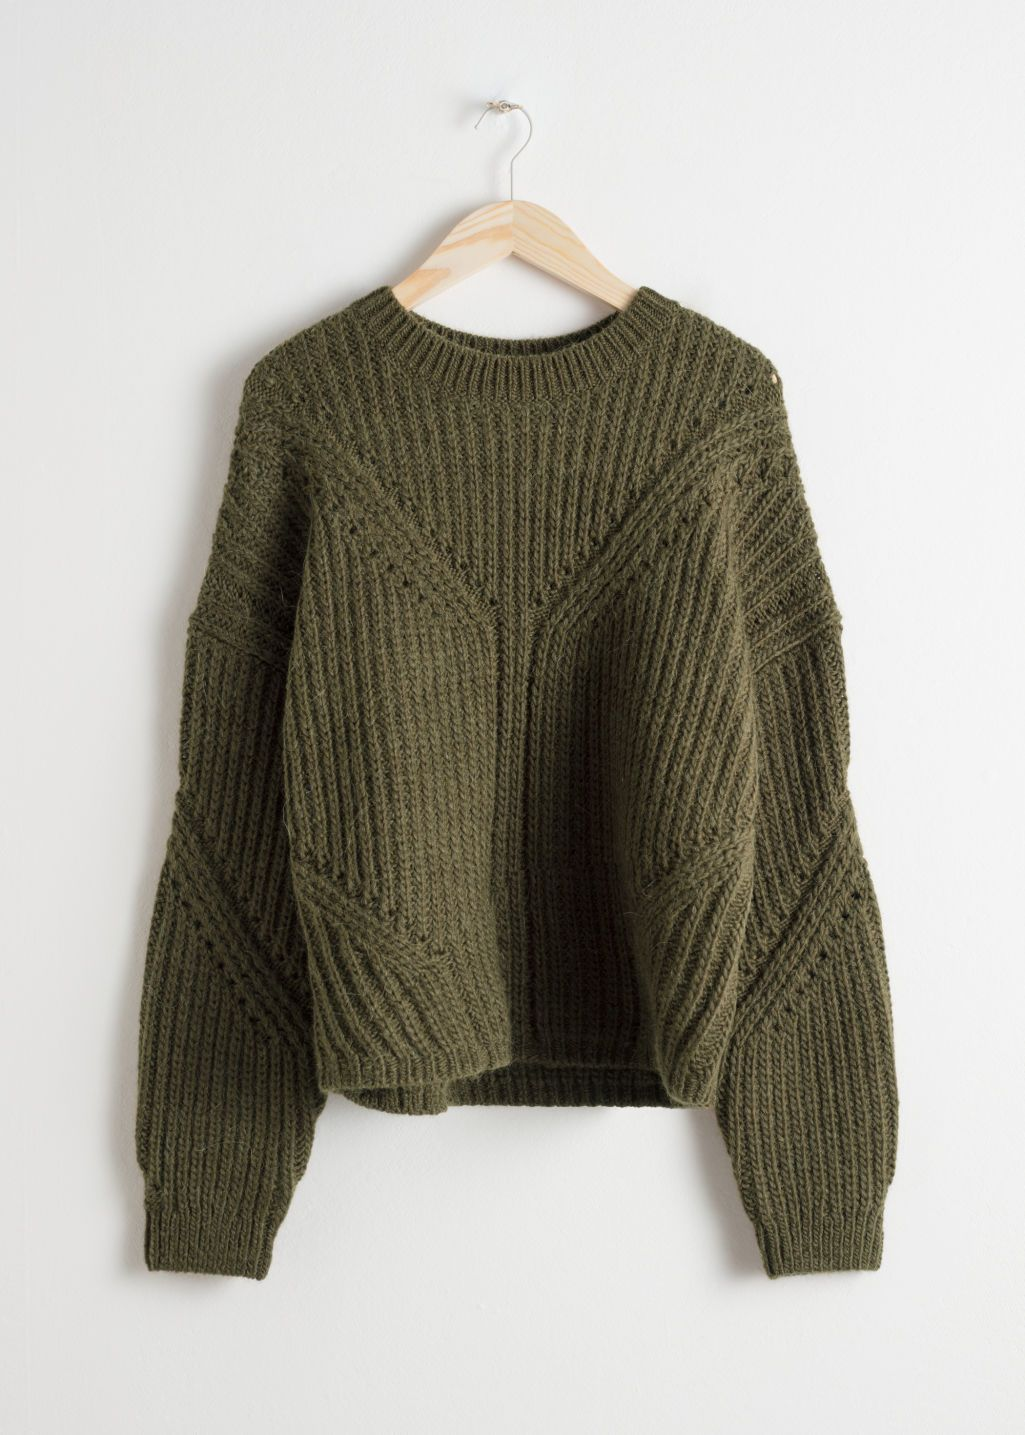 Oversized Curved Knit Sweater